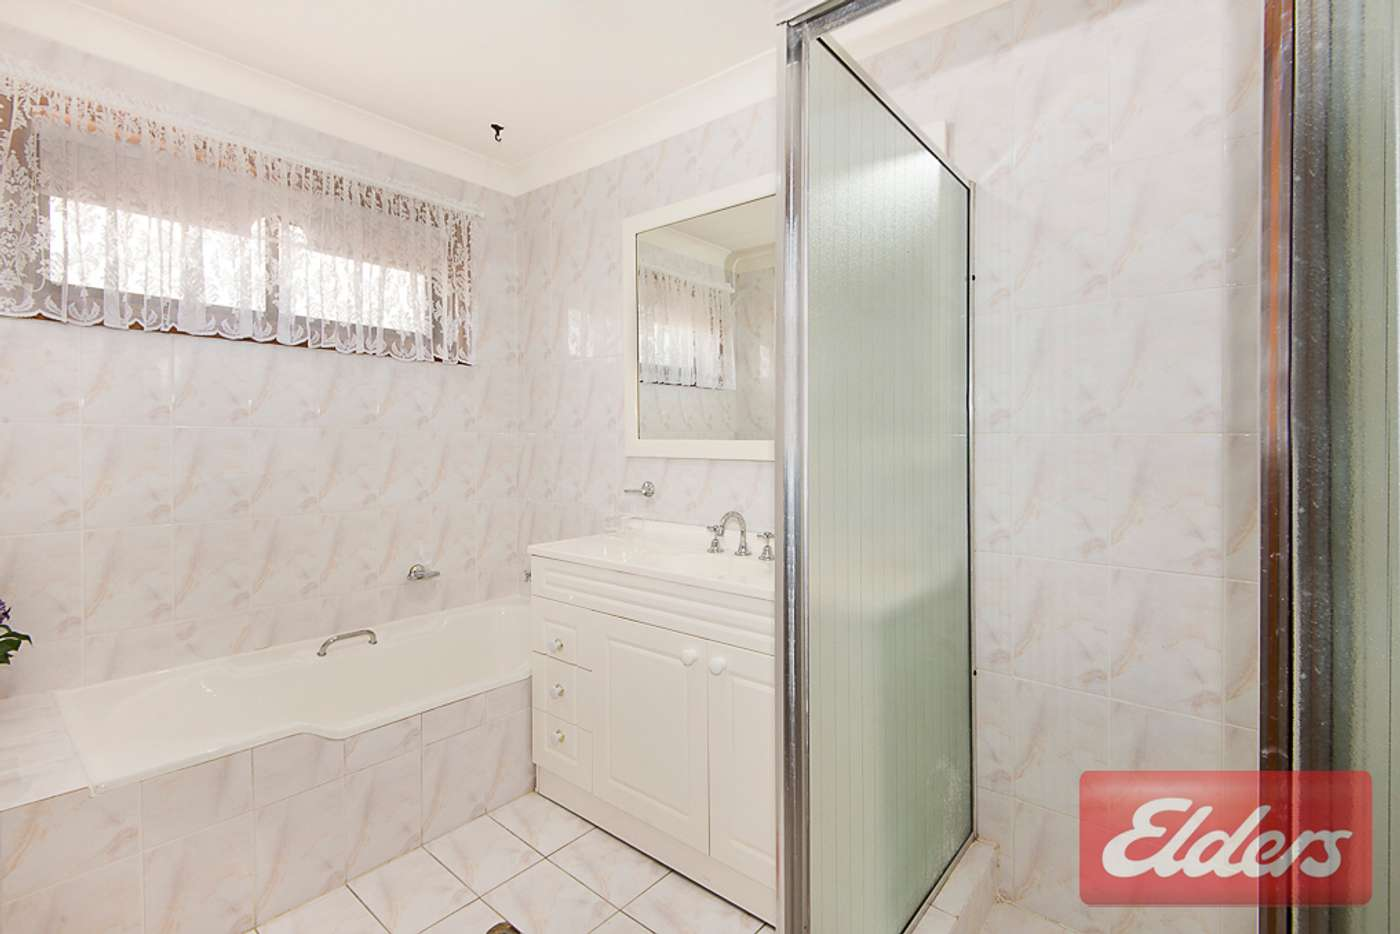 Sixth view of Homely house listing, 10 Dorlton Street, Kings Langley NSW 2147